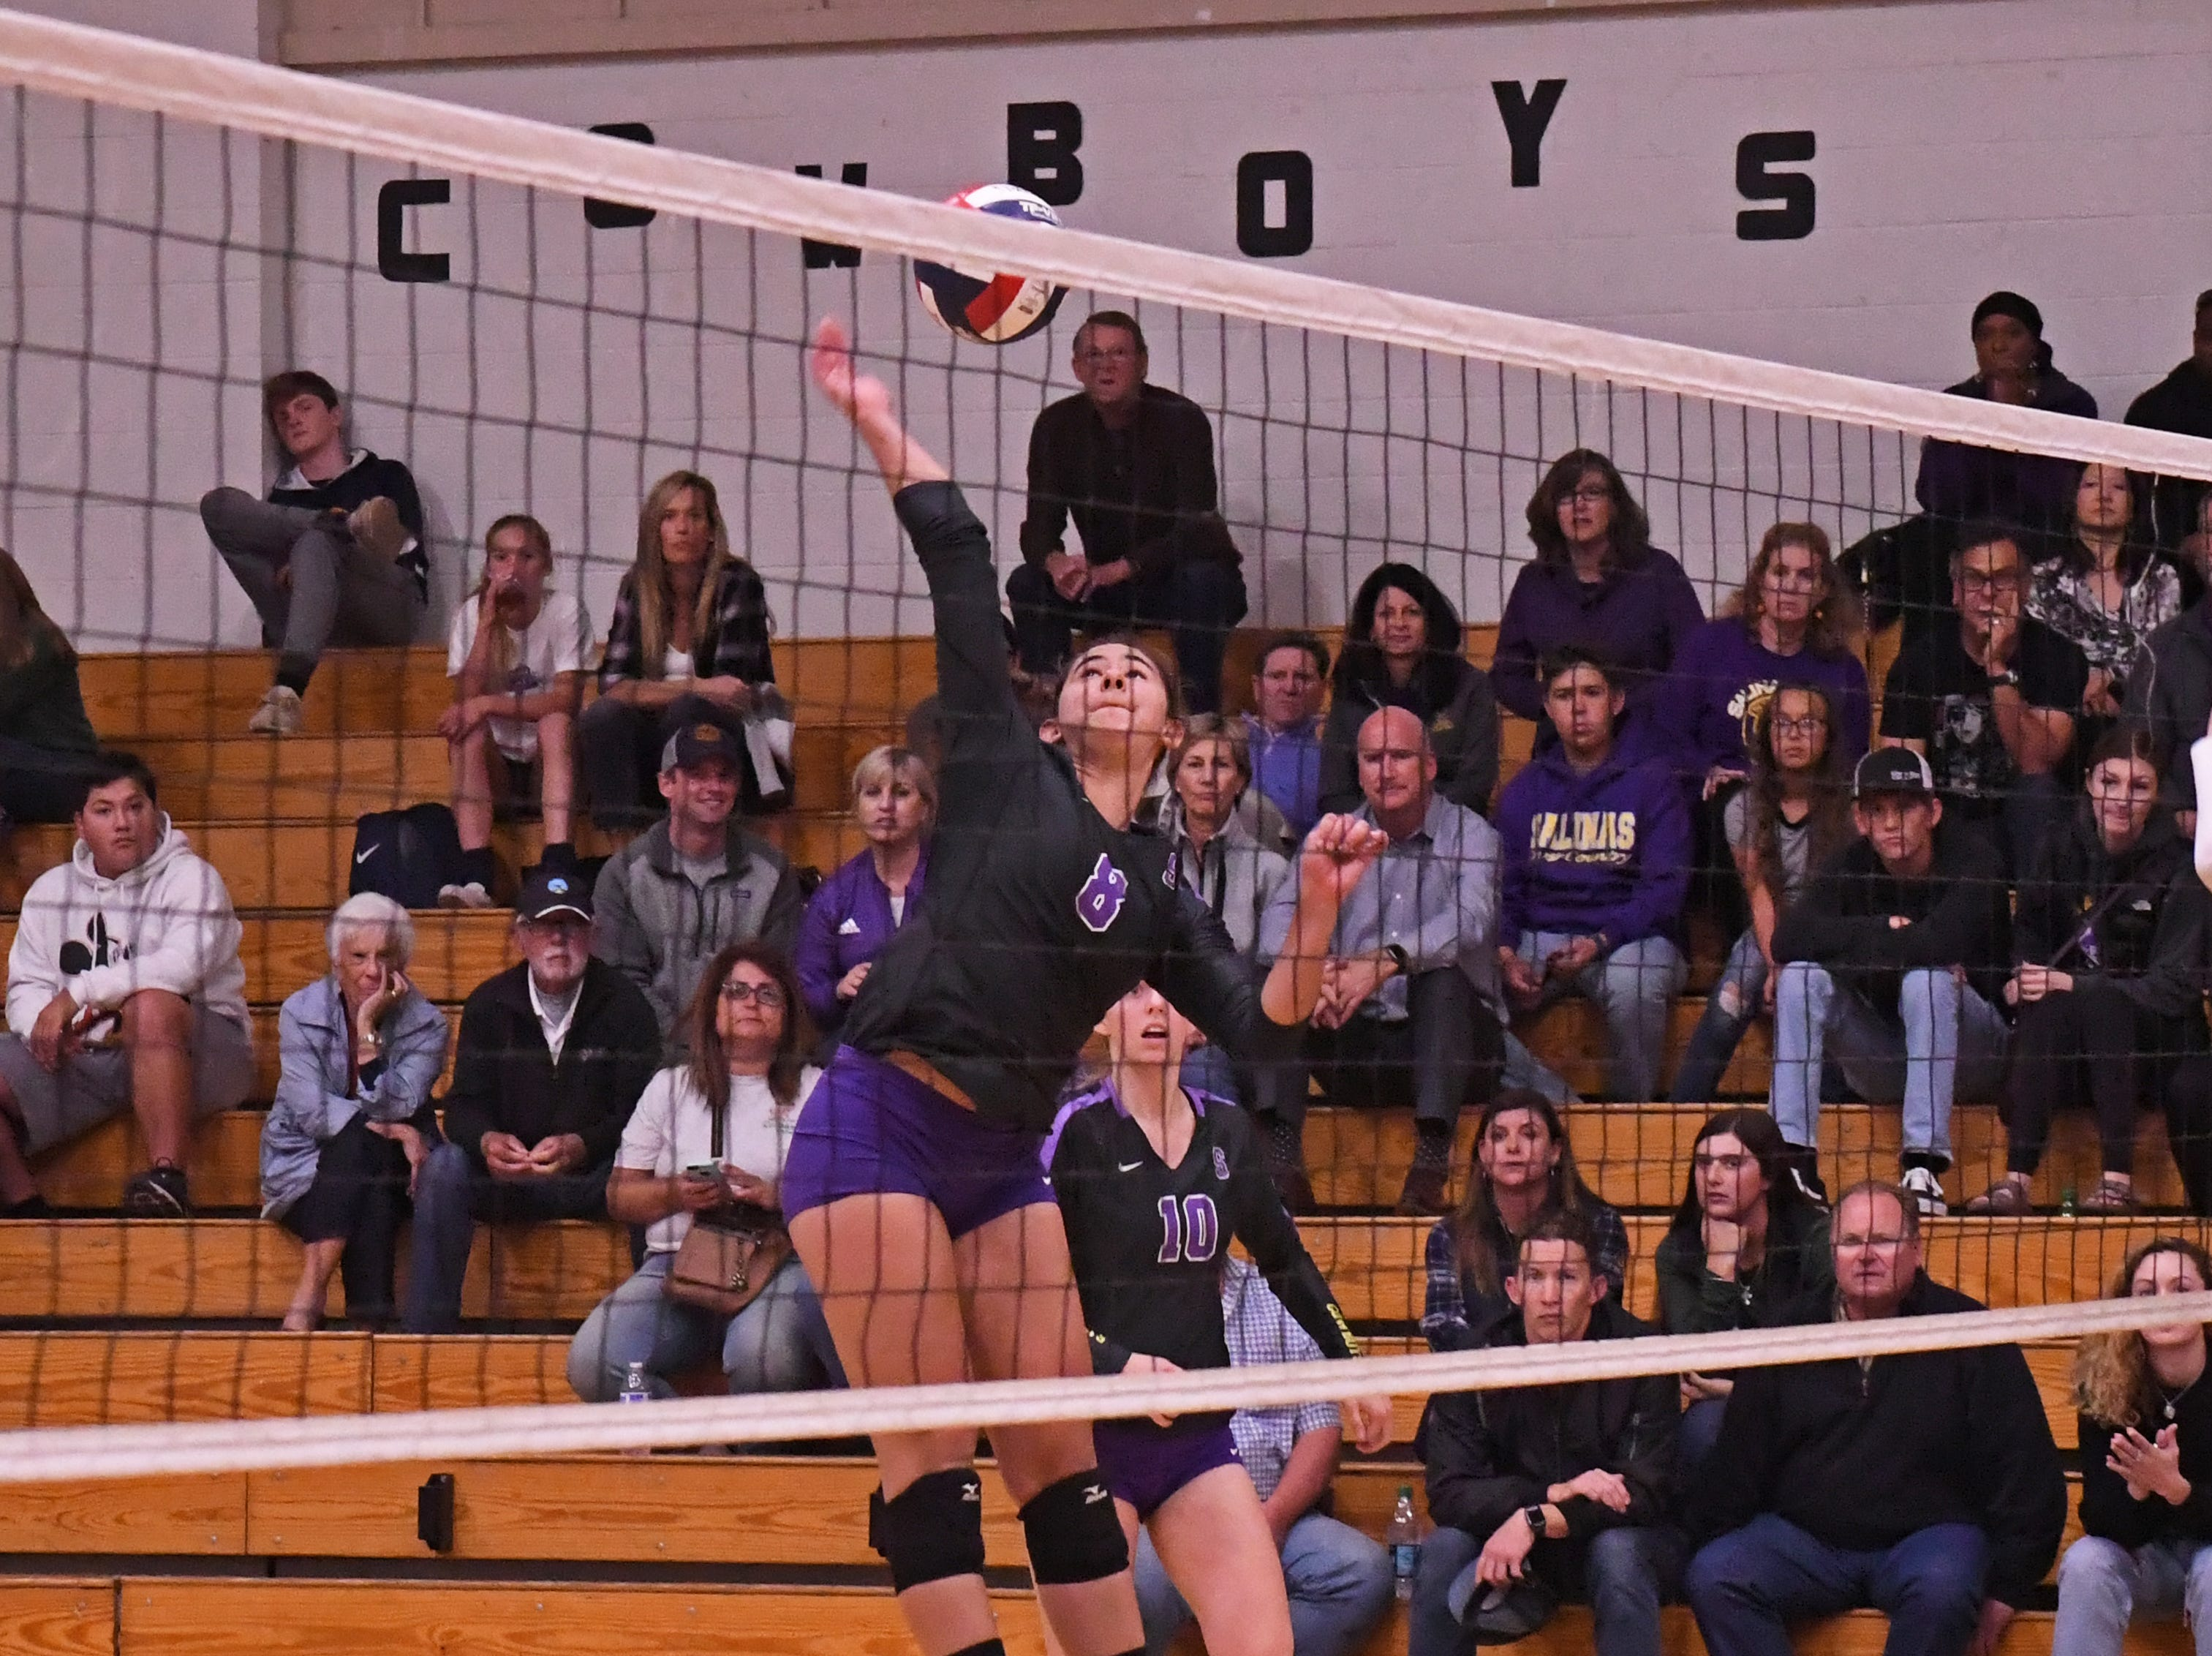 Middle blocker Christina Chagnon (8) fires a spike in the second set.